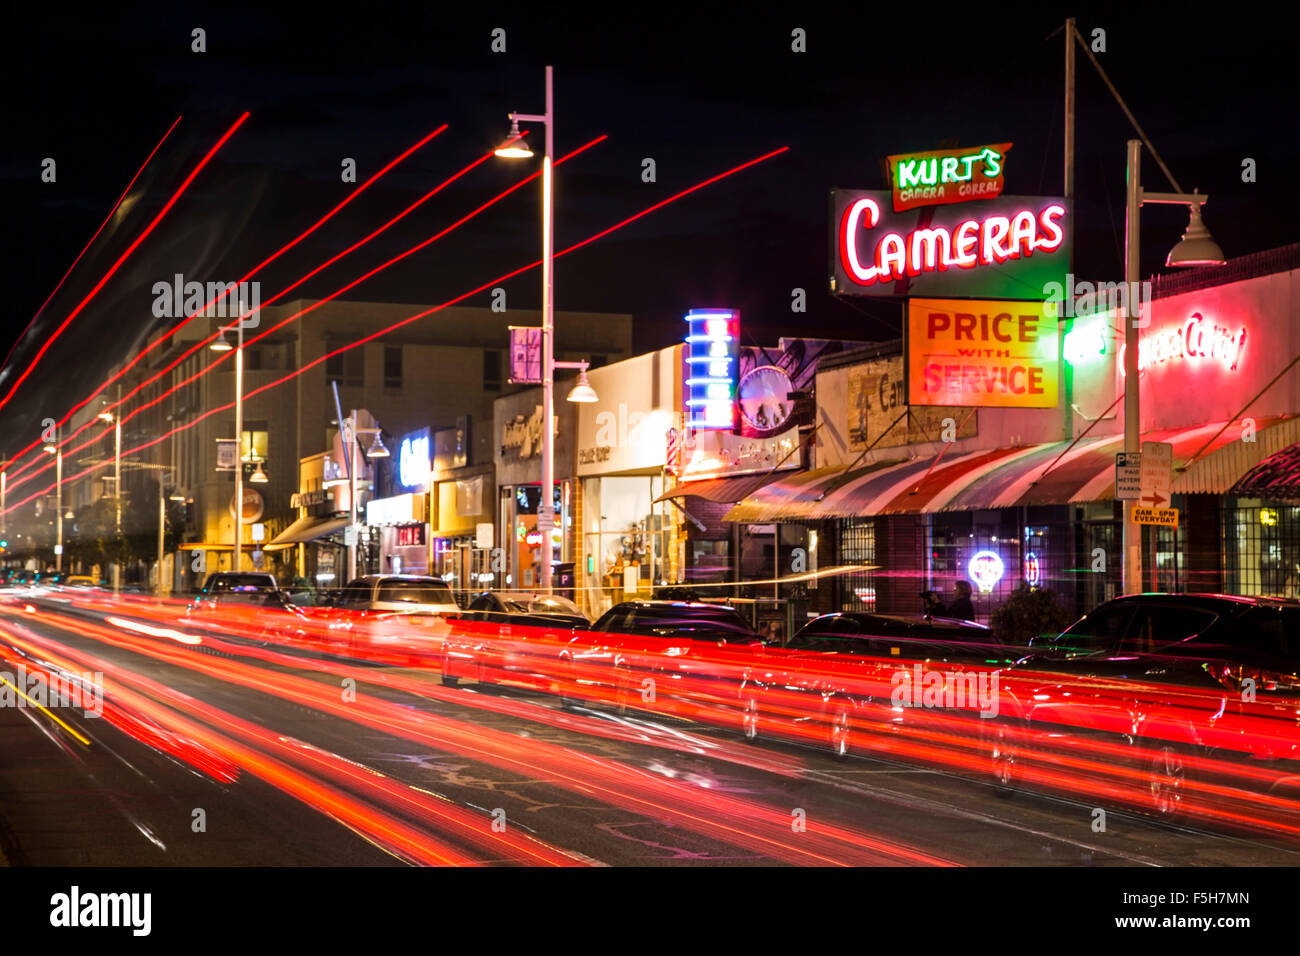 Kurt's Camera Corral neon sign and light streaks on Central Avenue (formerly Route 66), Nob Hill, Albuquerque, - Stock Image